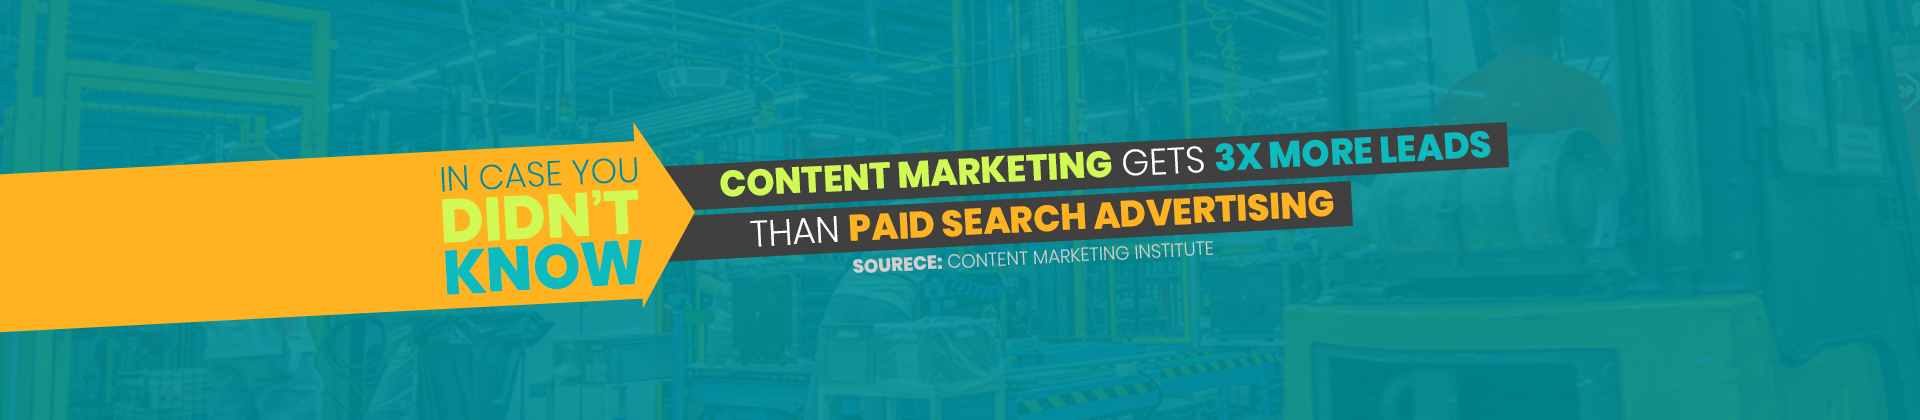 Content marketing gets 3x more leads than paid search advertising